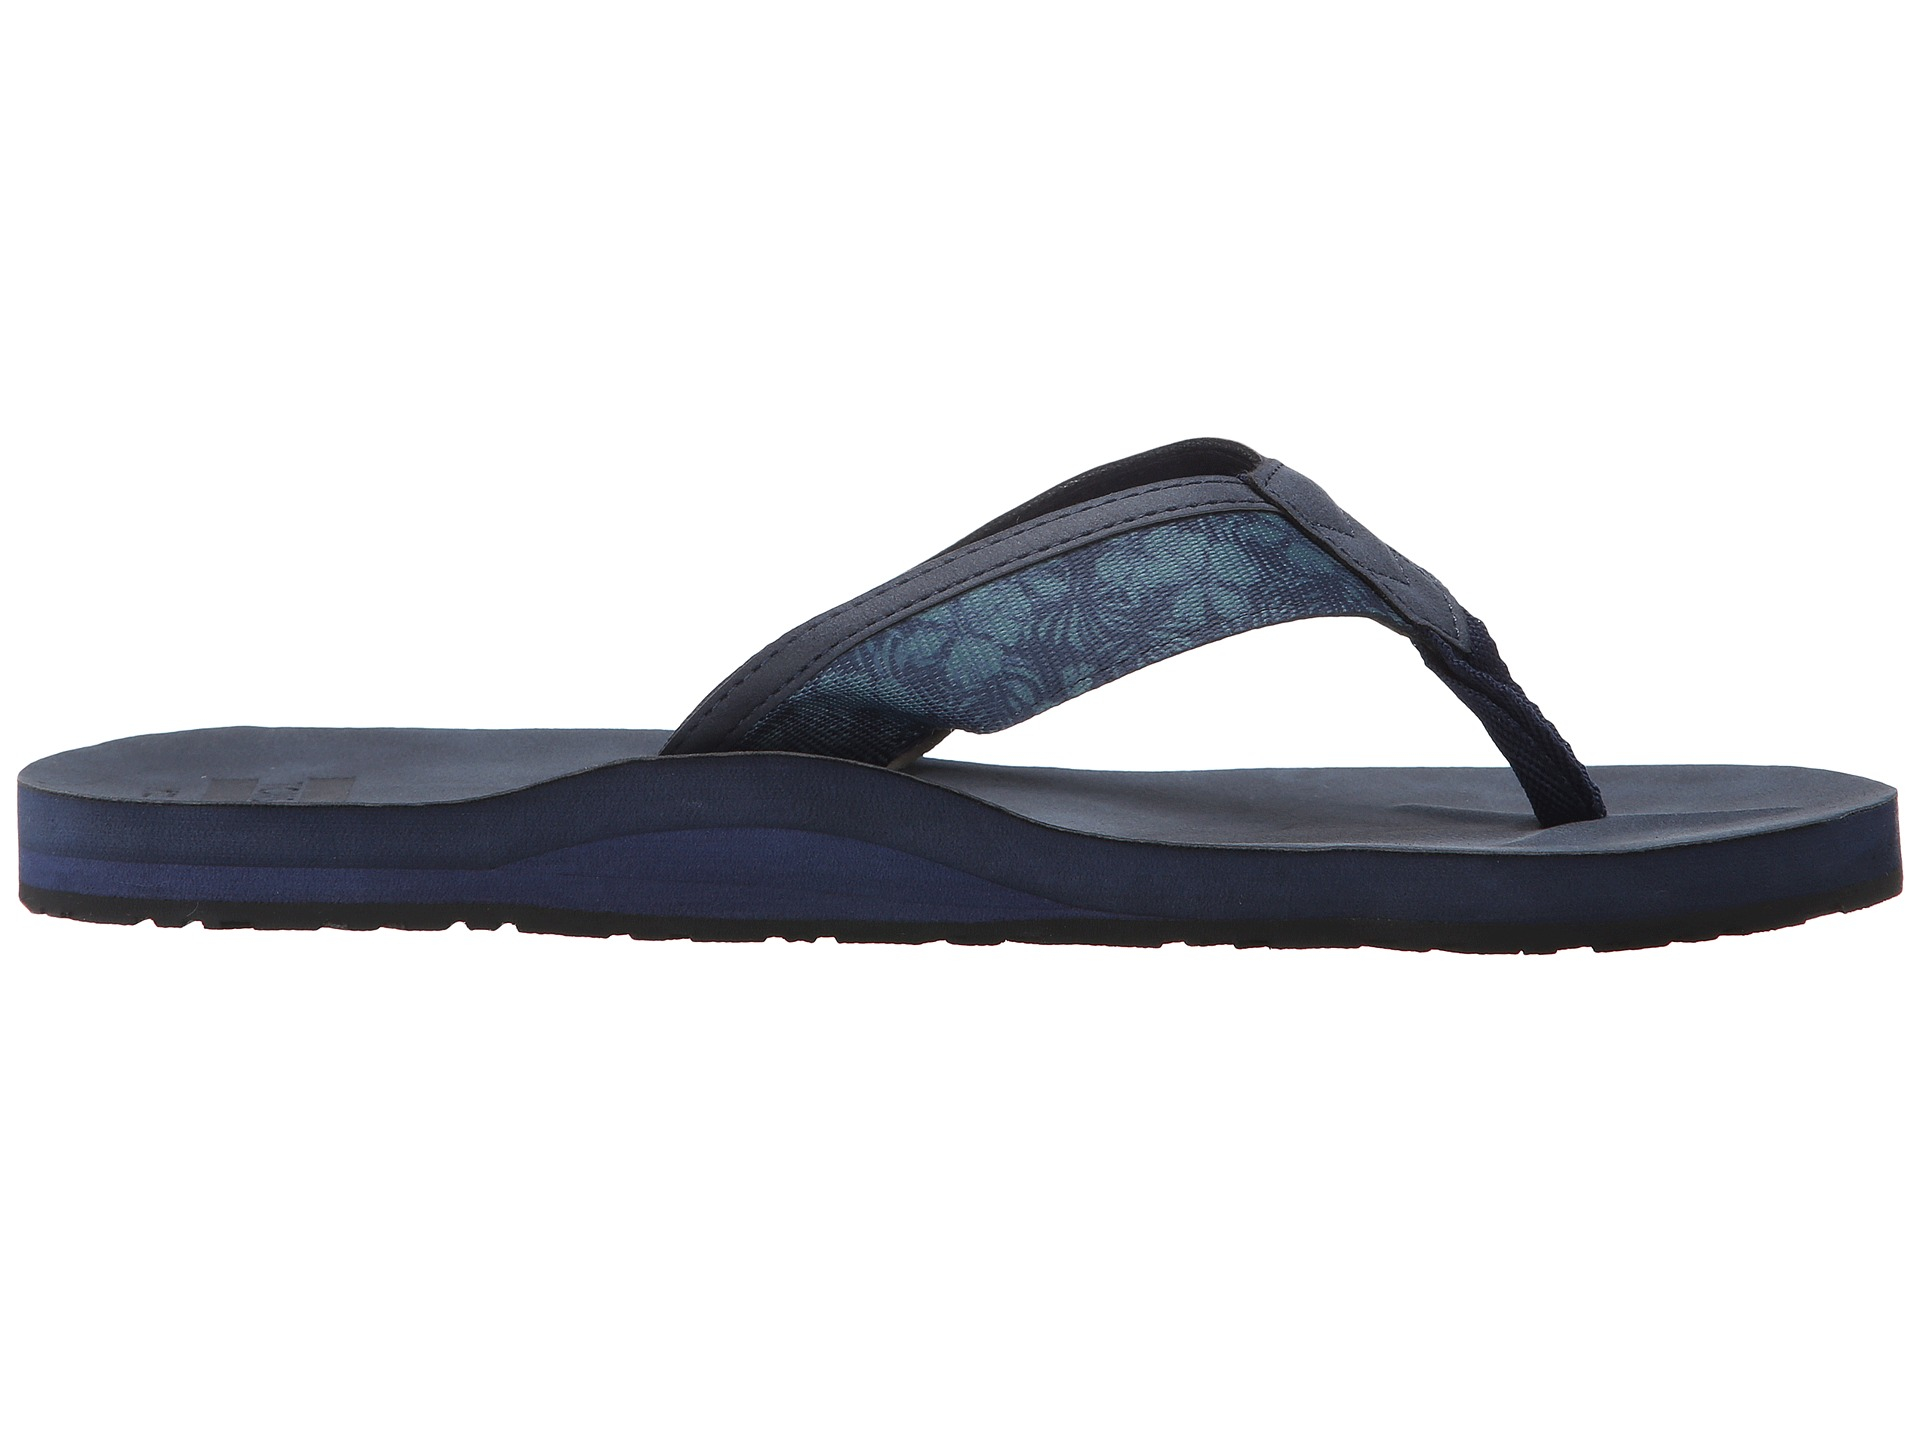 c5bc57aa830 Lyst - TOMS Verano Flip Flop in Blue for Men